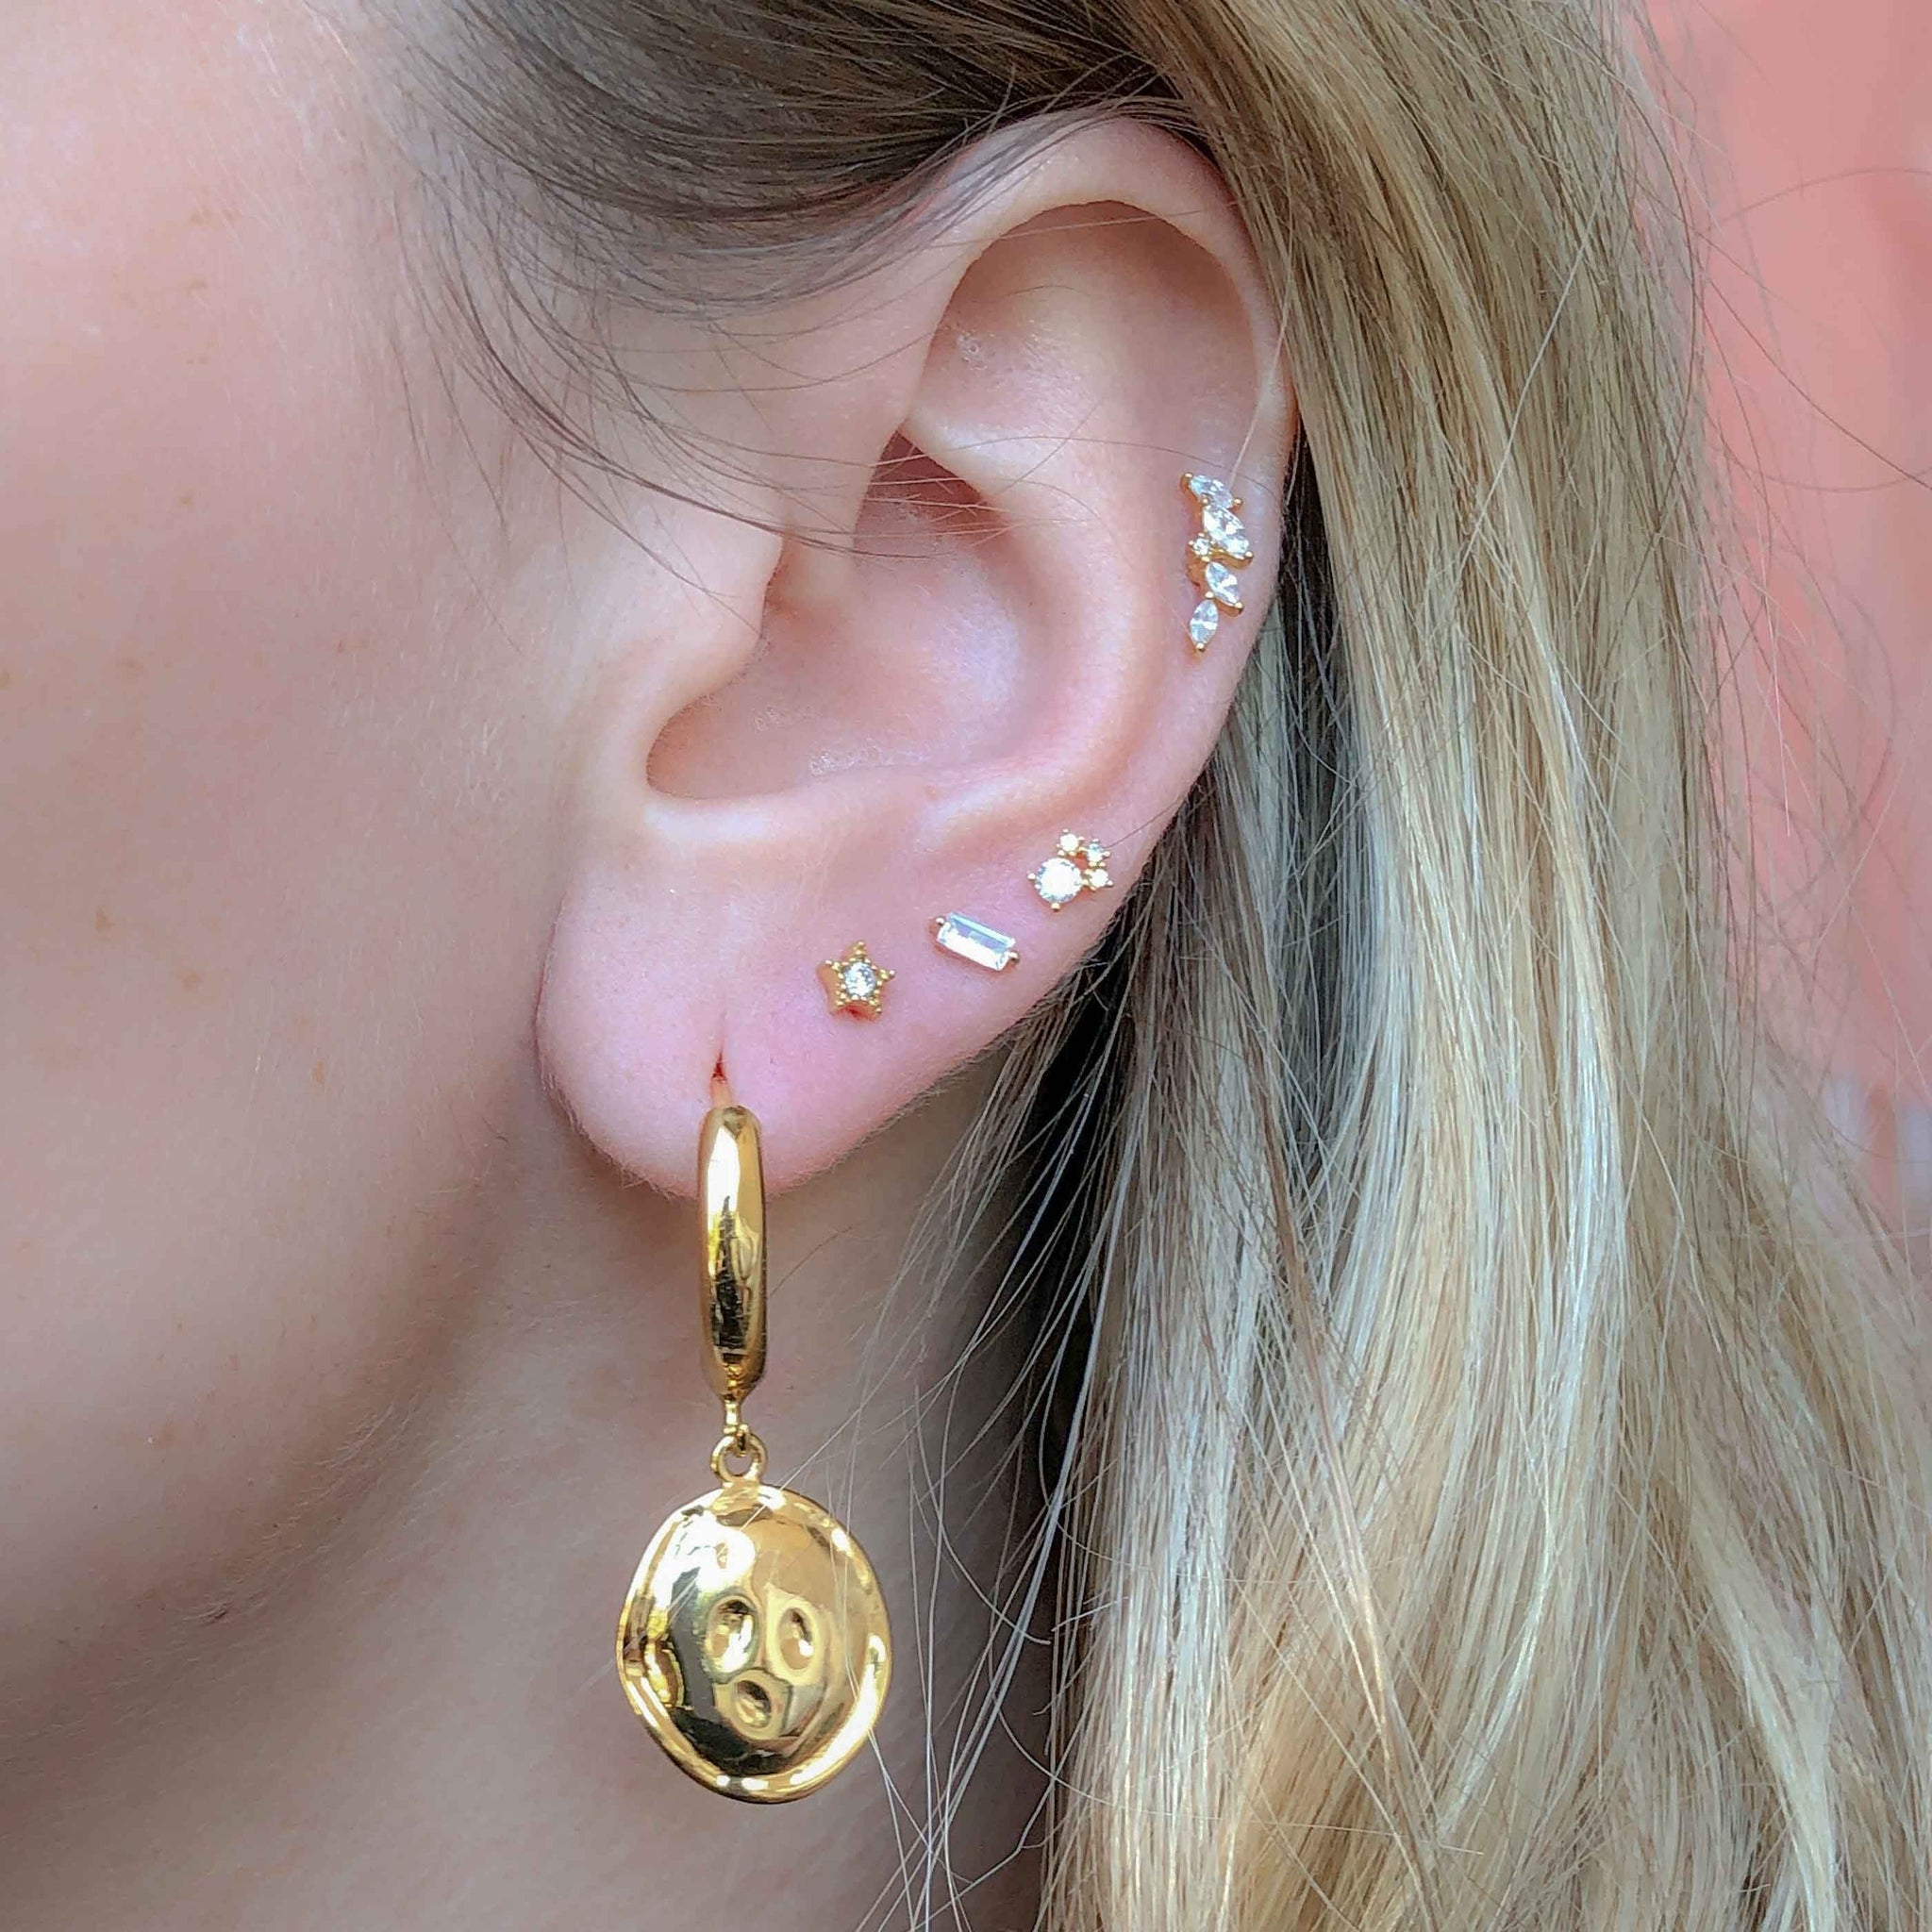 Crystal & Triple Stone Barbell in Gold worn in upper lobe piercing